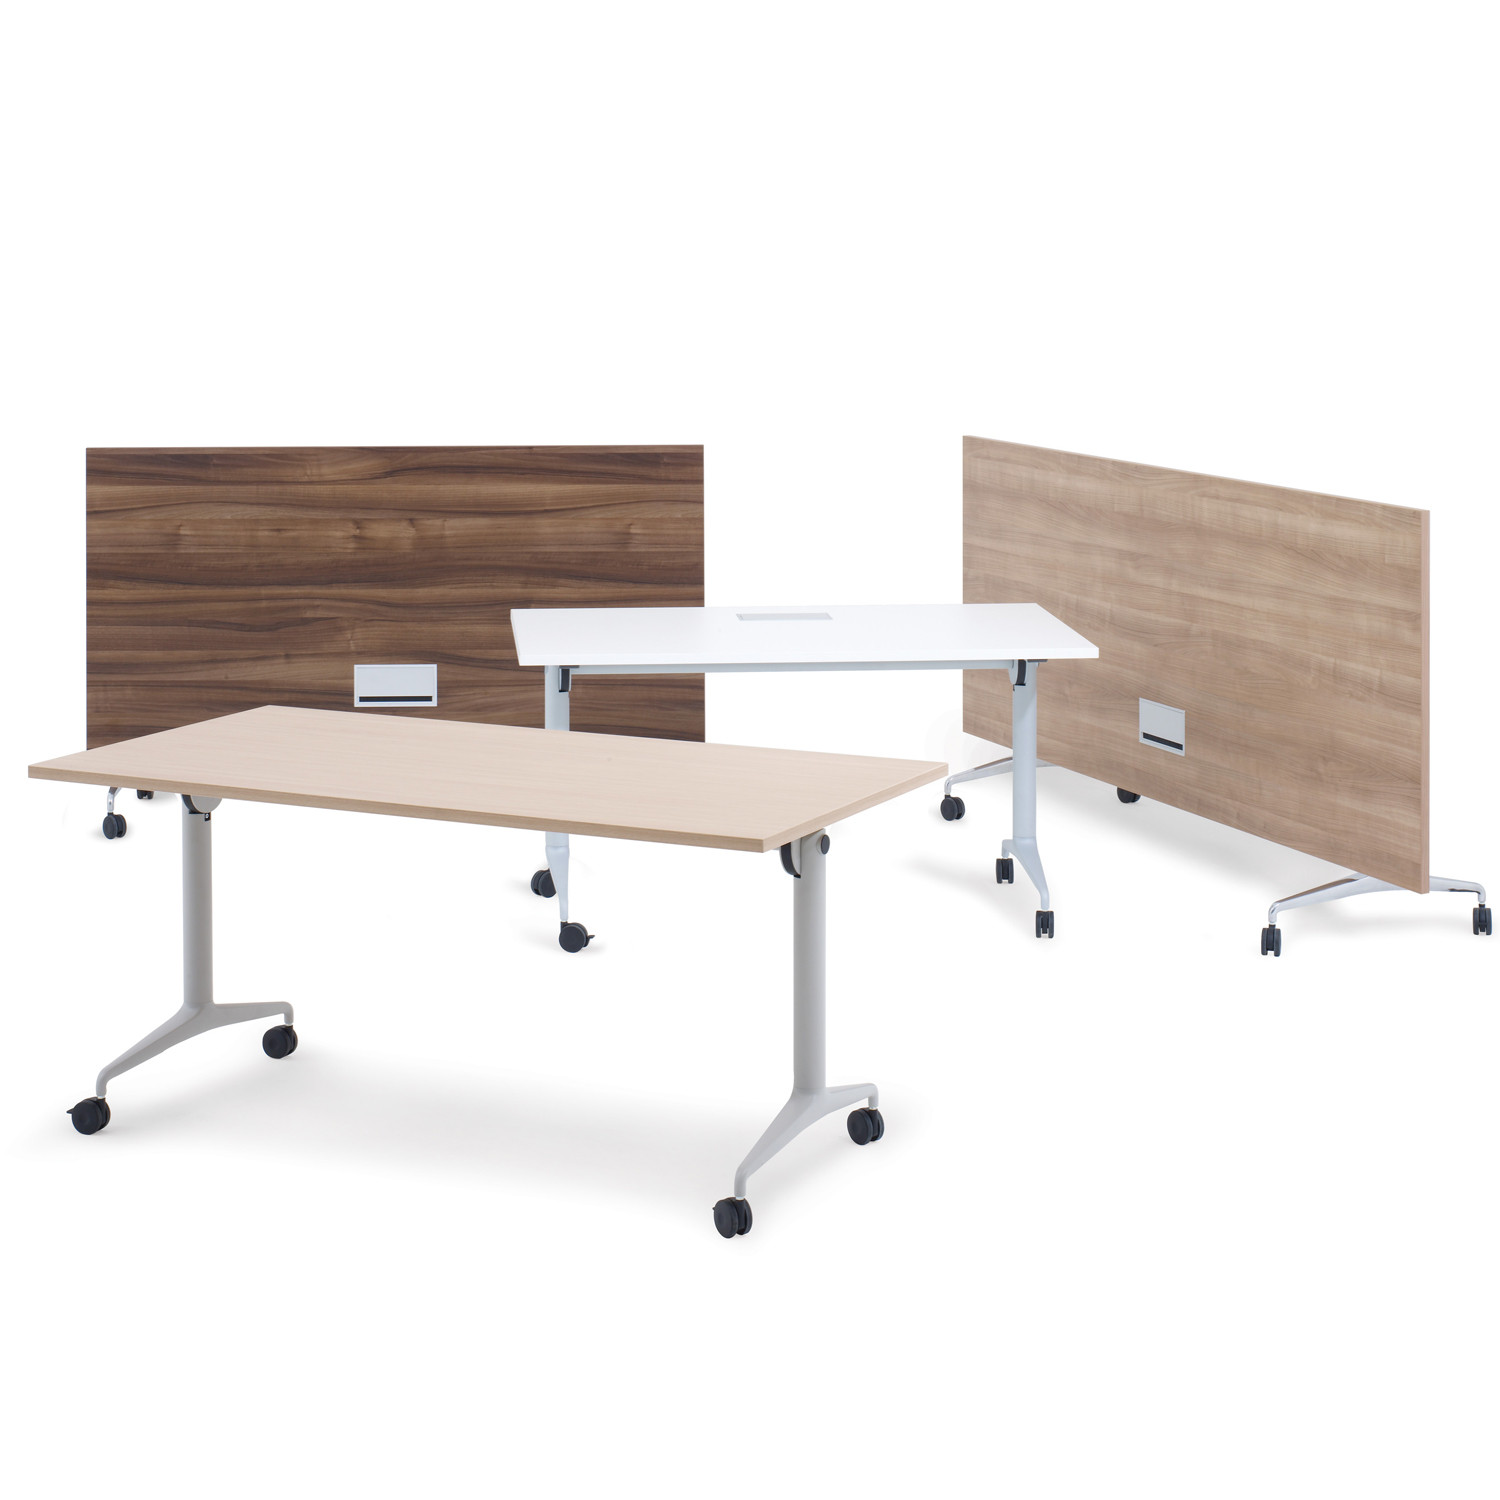 Obvio Active Folding Tables